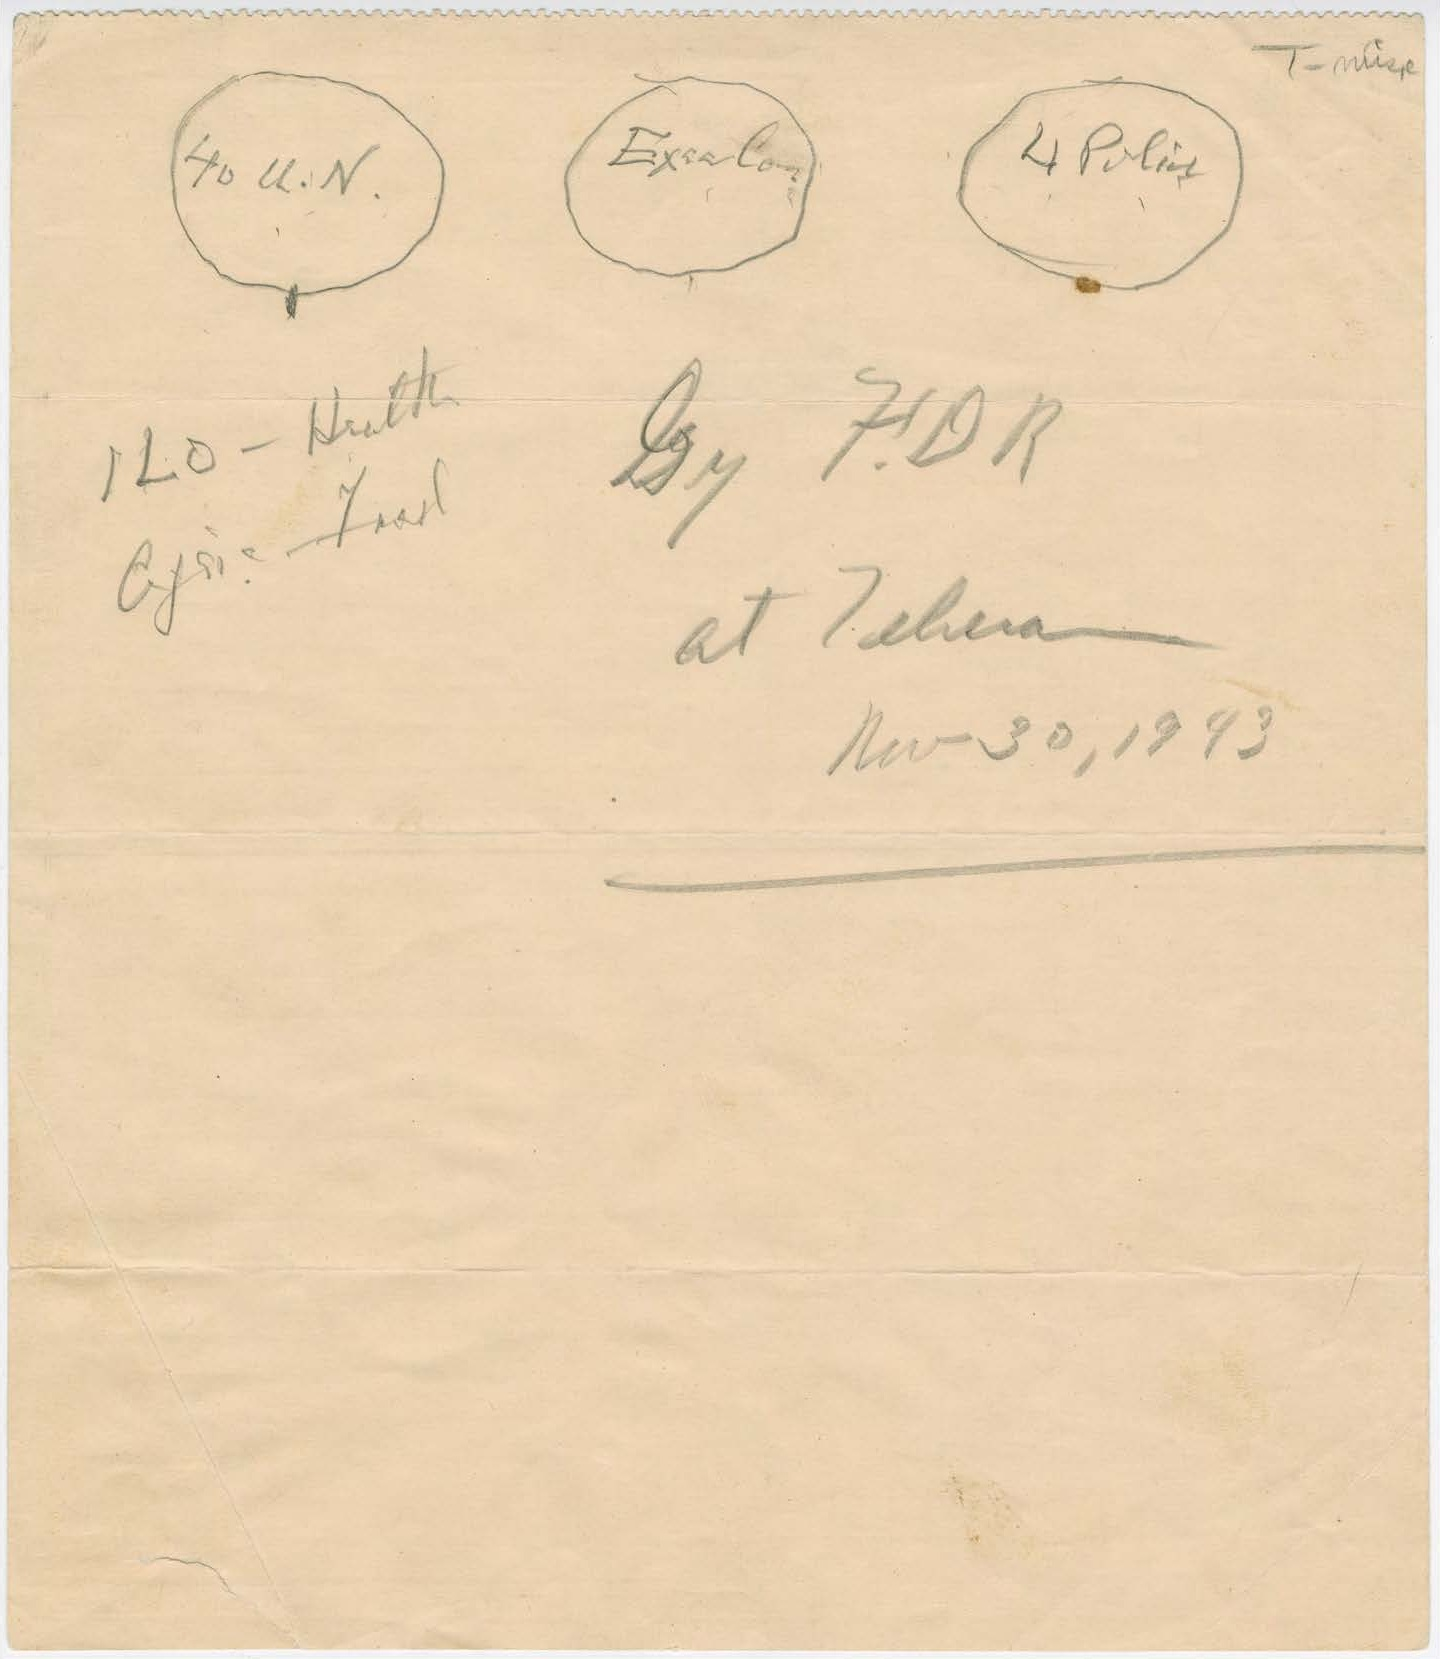 1943 sketch by Franklin Roosevelt of the UN original three branches: The [[Four Policemen